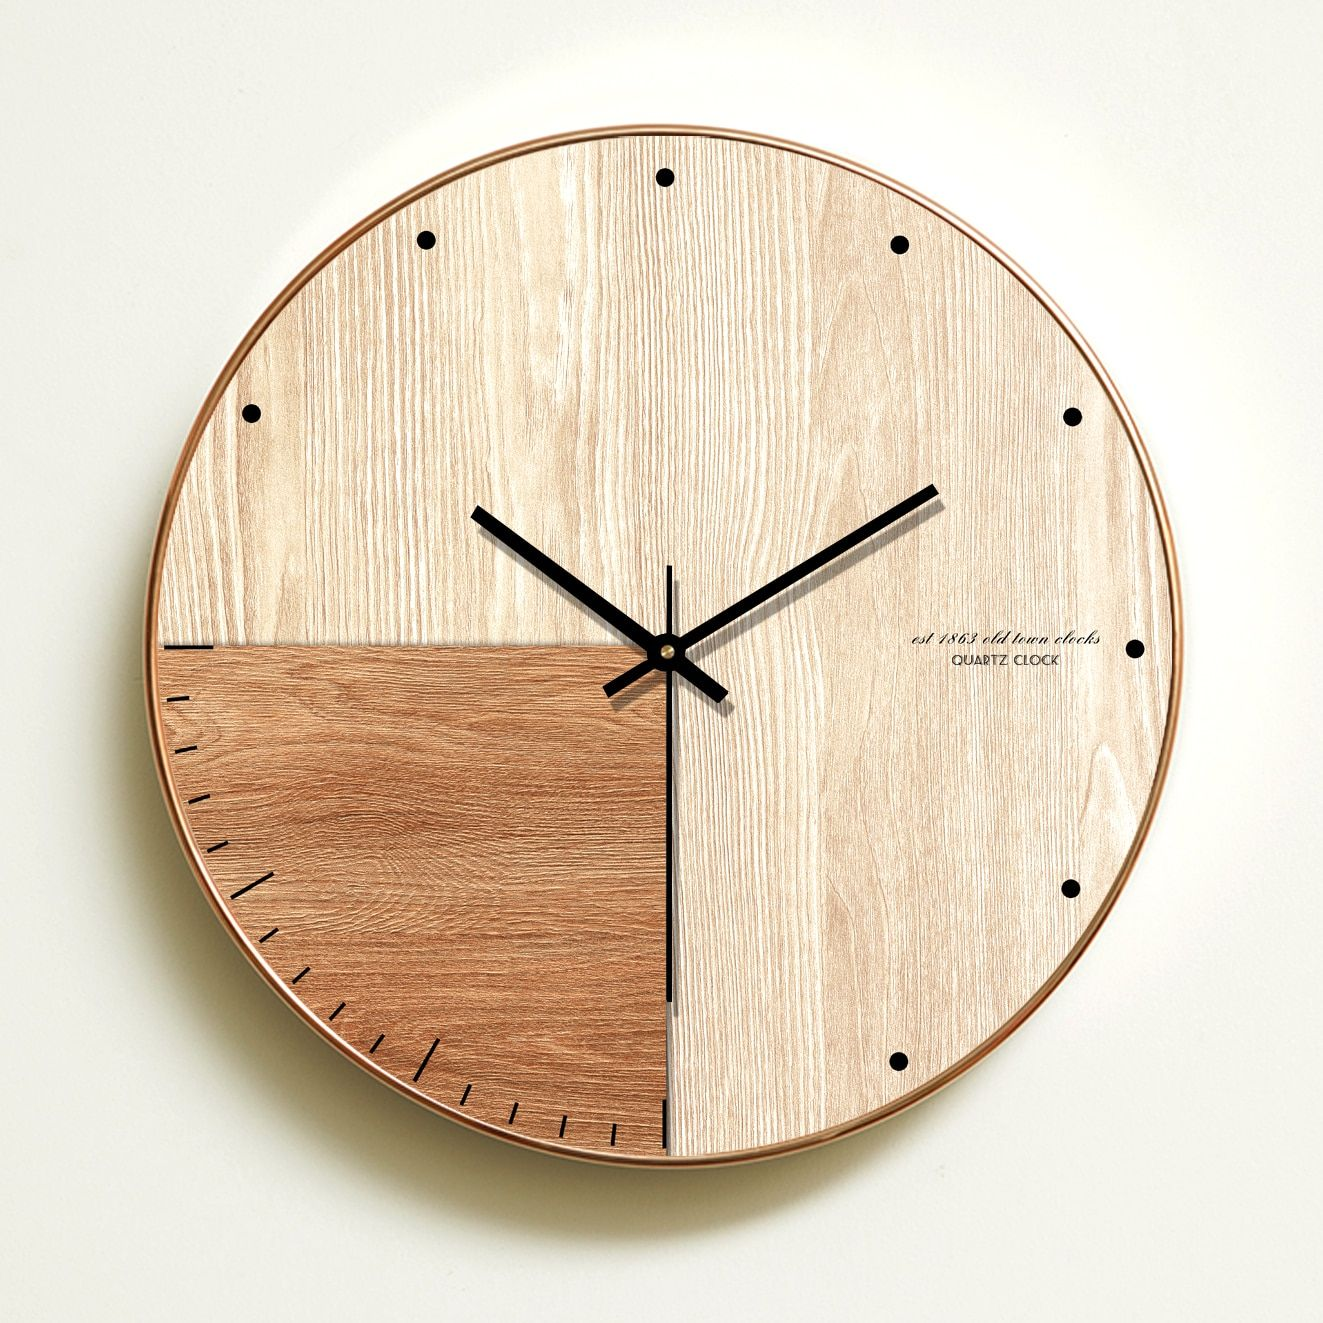 Wall Clock Simple Modern Design Wooden Clocks For Bedroom Wood Wall Watch Home Decor Silent En 2020 Horloge Murale Horloge Murale Design Grandes Horloges Murales